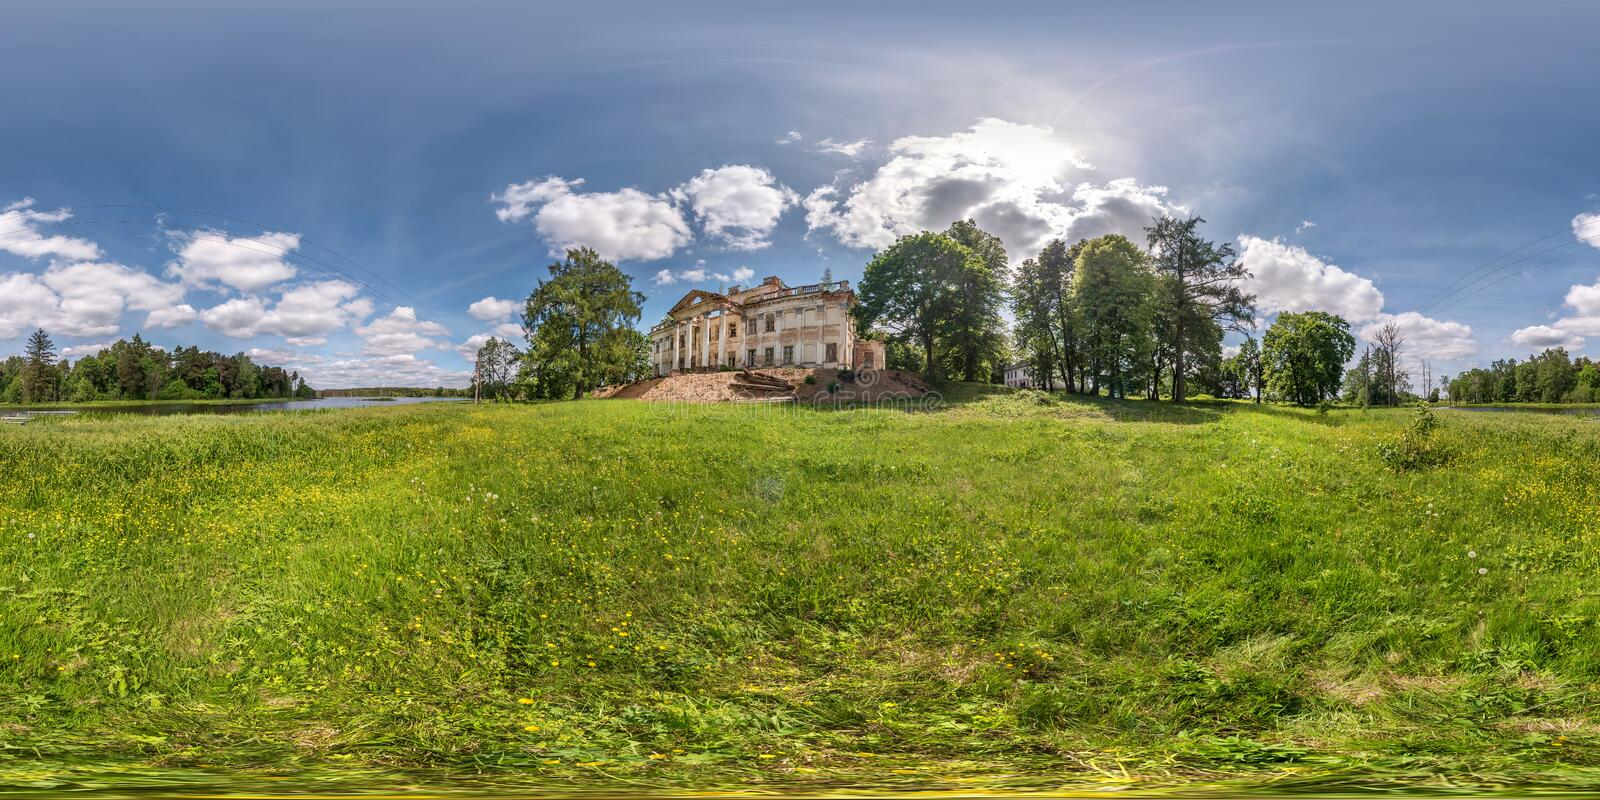 Full seamless spherical hdri panorama 360 degrees angle view near stone abandoned ruined palace and park complex in. Equirectangular projection, VR AR virtual royalty free stock image